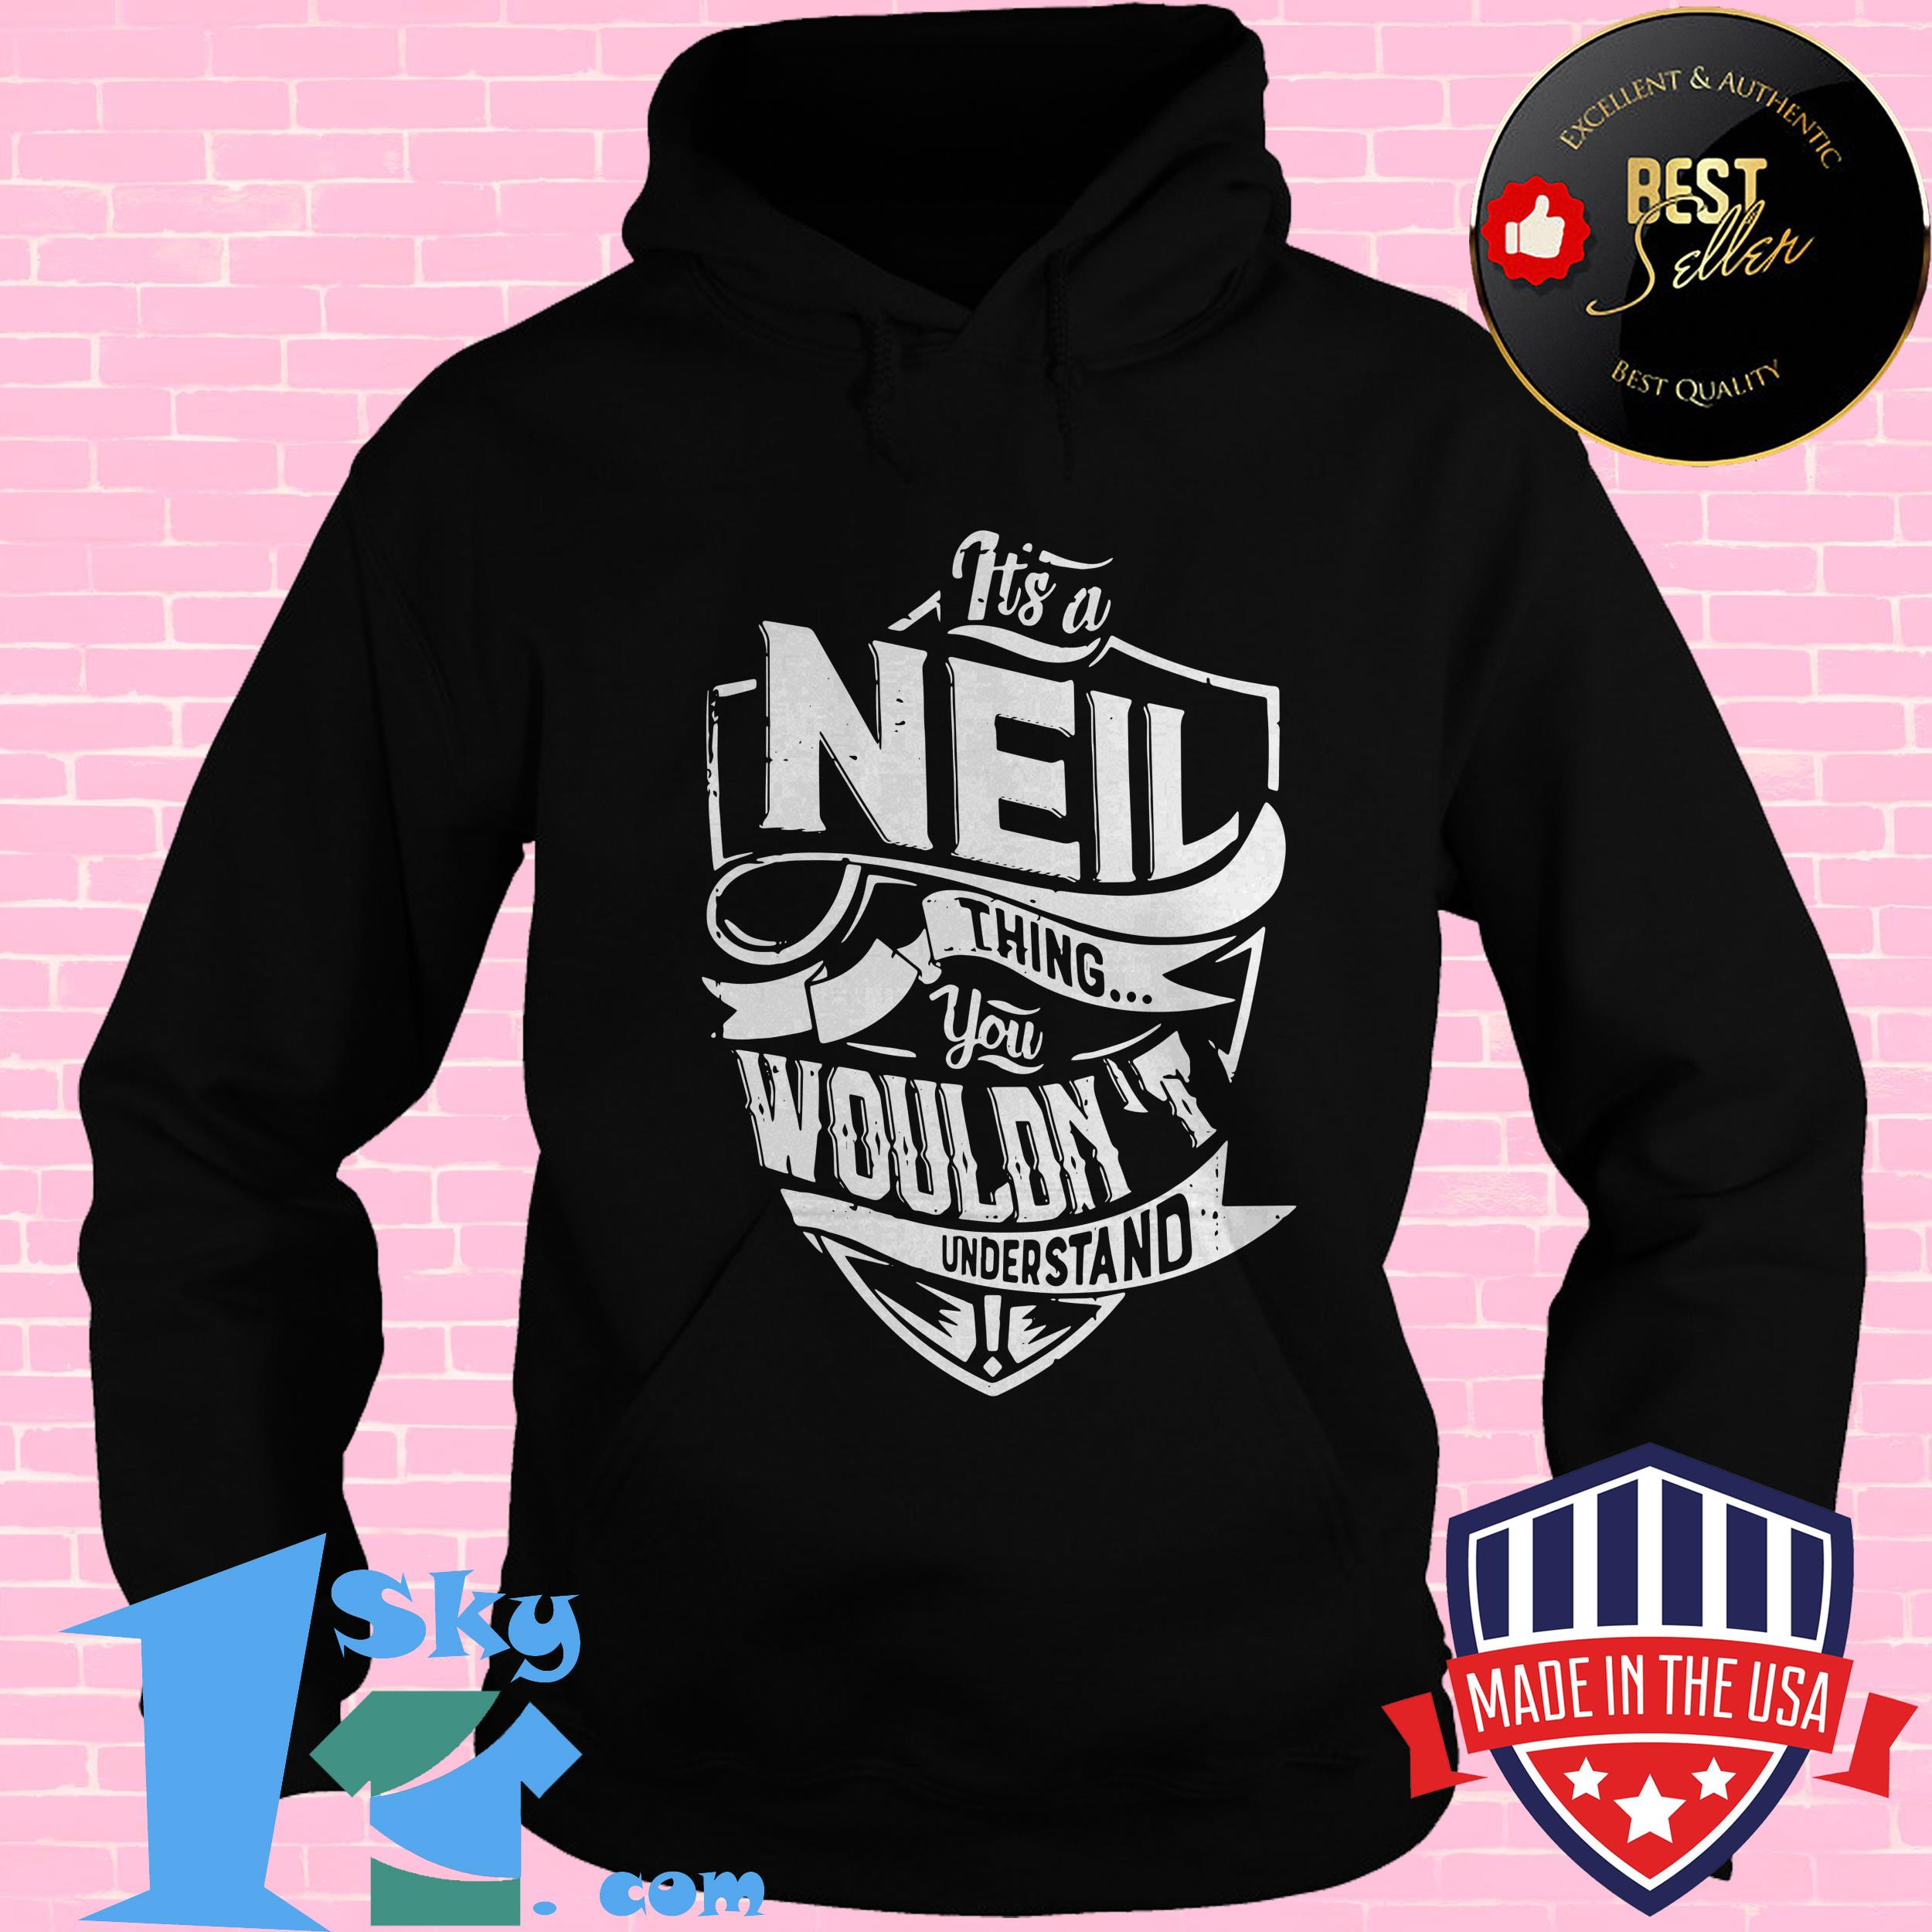 neil thing you wouldnt understand hoodie - Neil Thing You Wouldn't Understand shirt